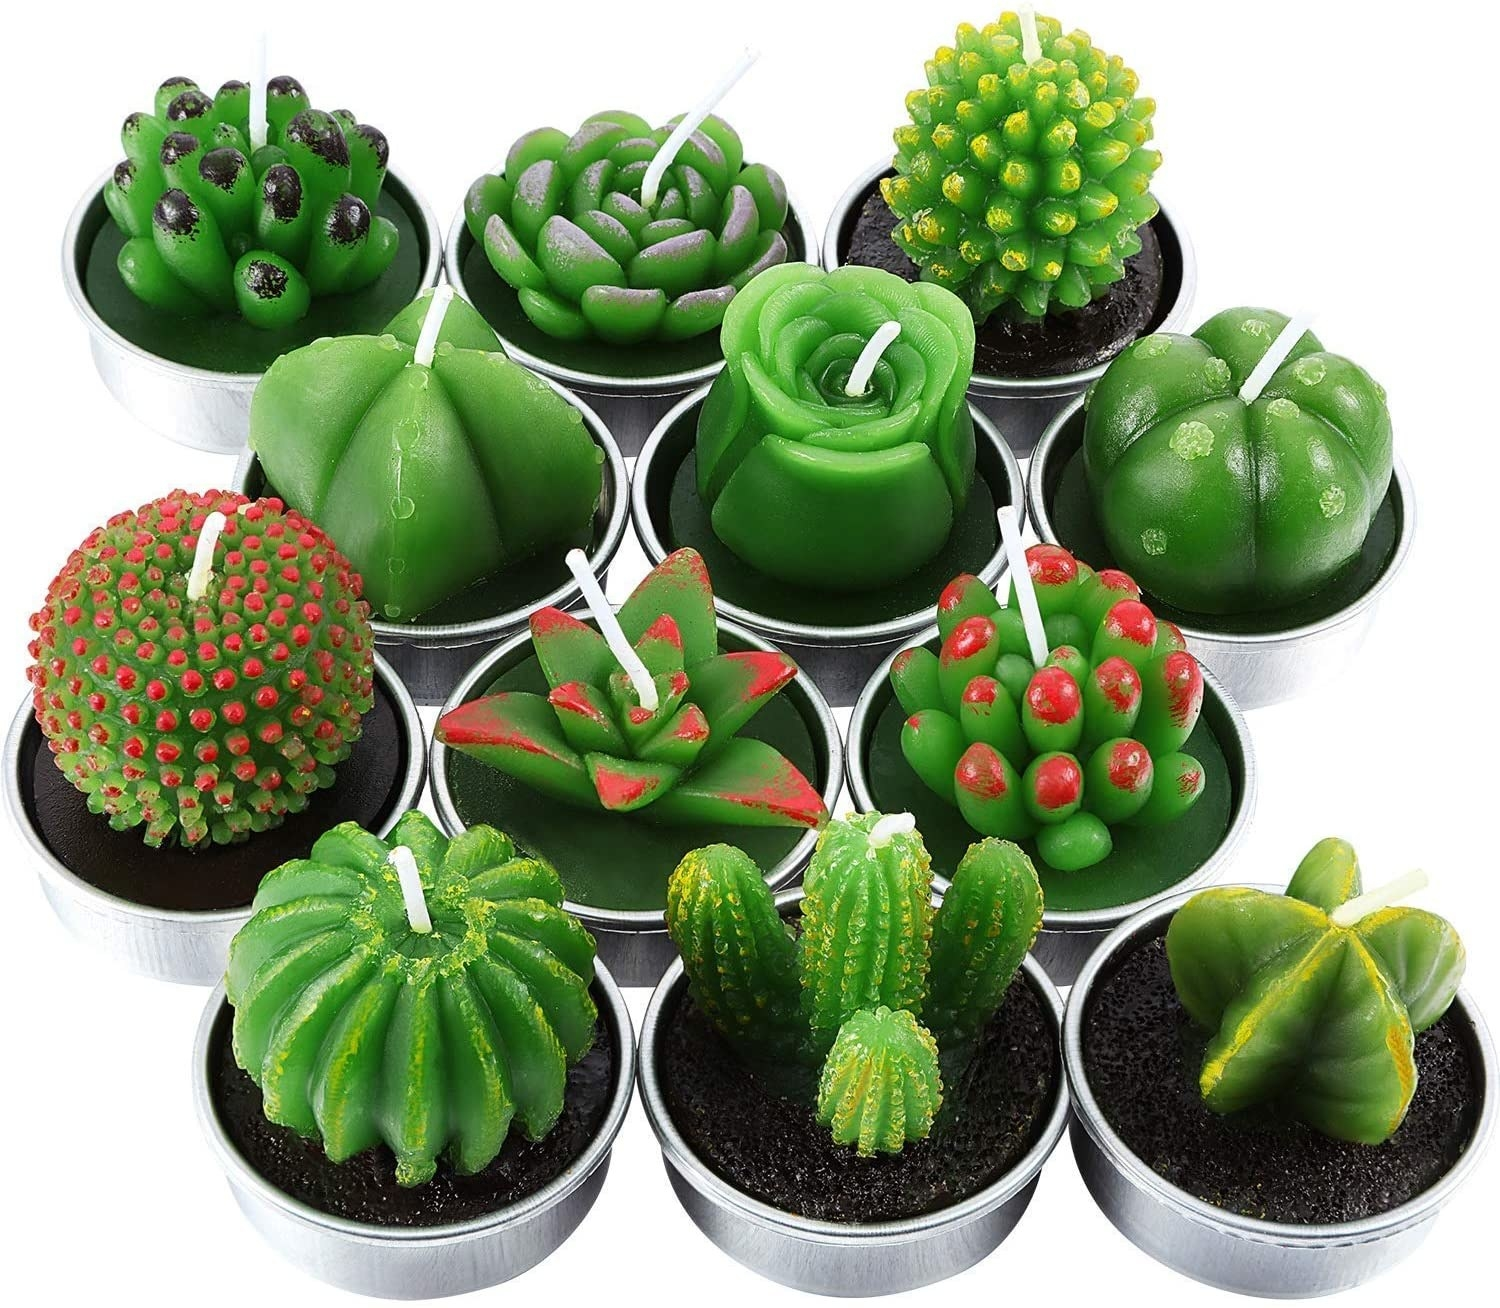 A set of 12 tealights shaped like different cacti and succulents